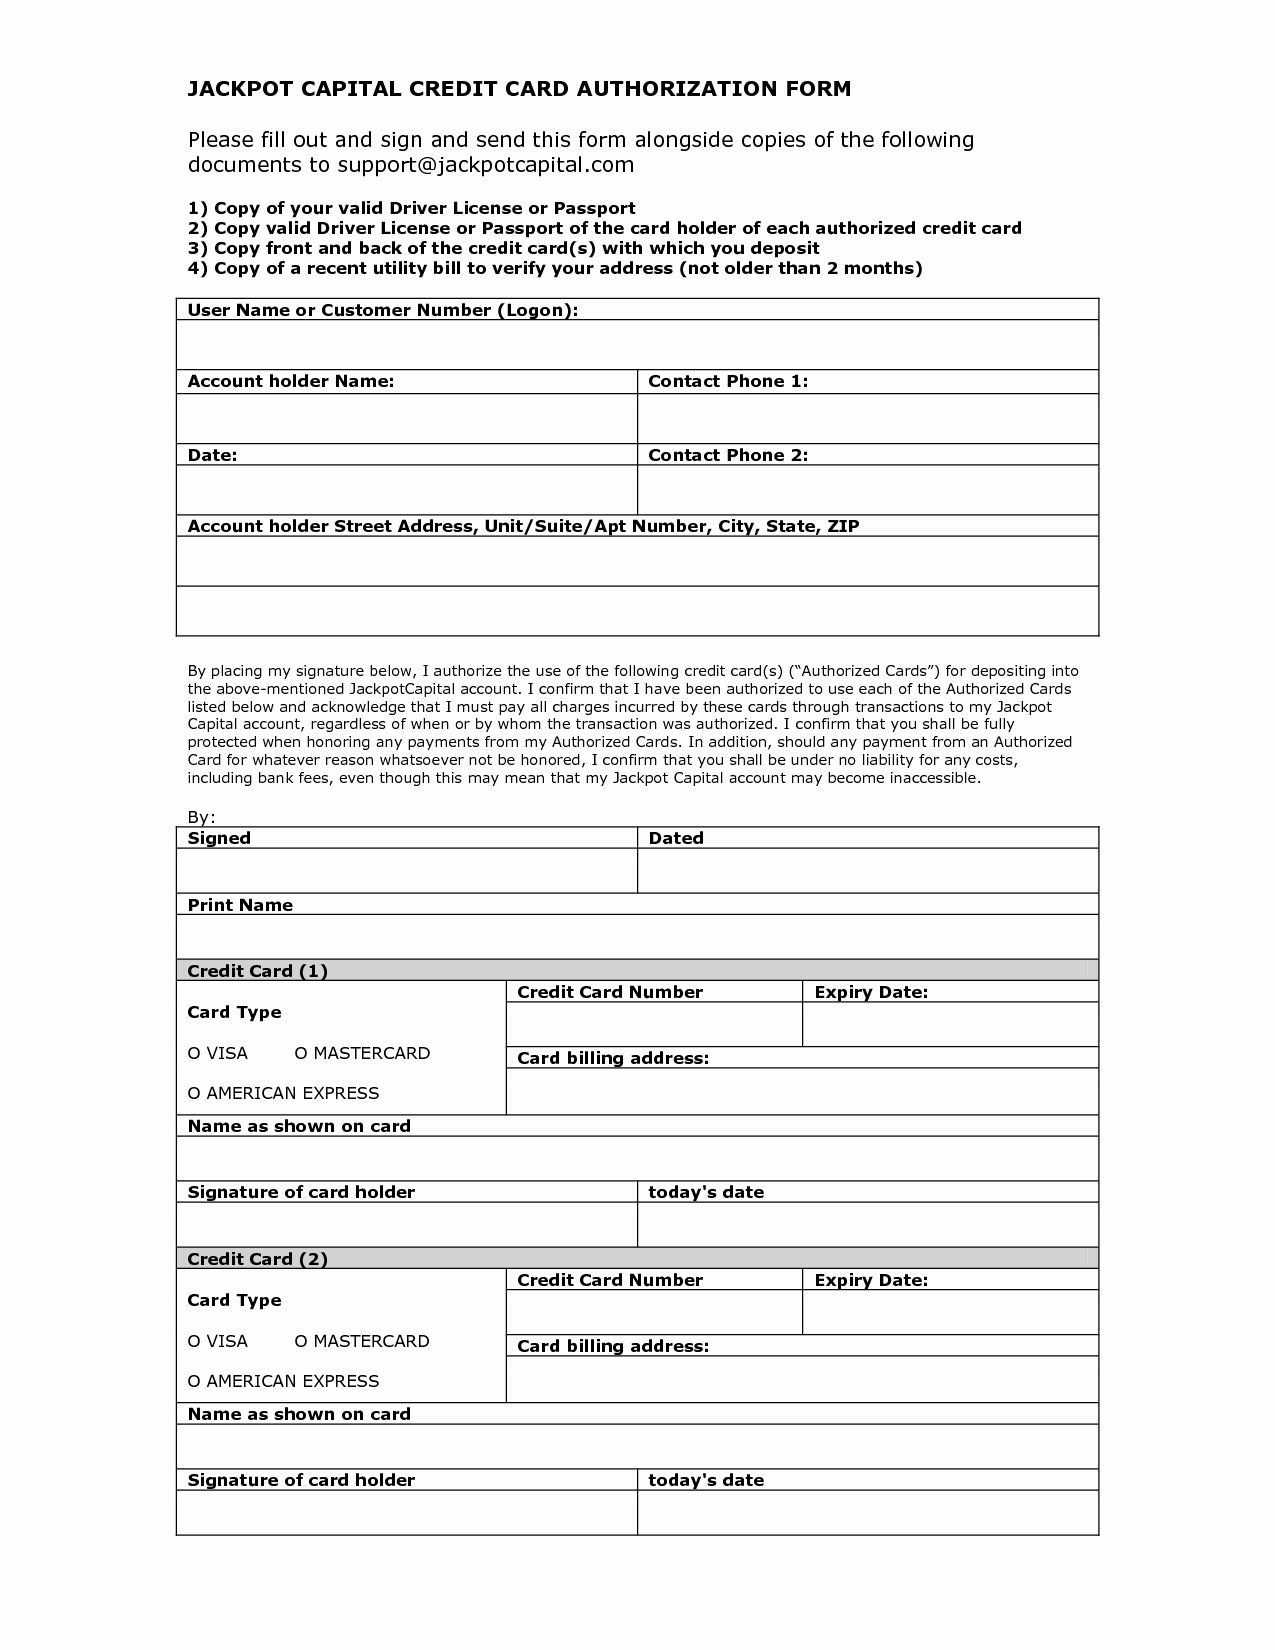 Credit Card Authorization Form Word Unique Credit Card Authorization Form Template Word Free Credit Card Words